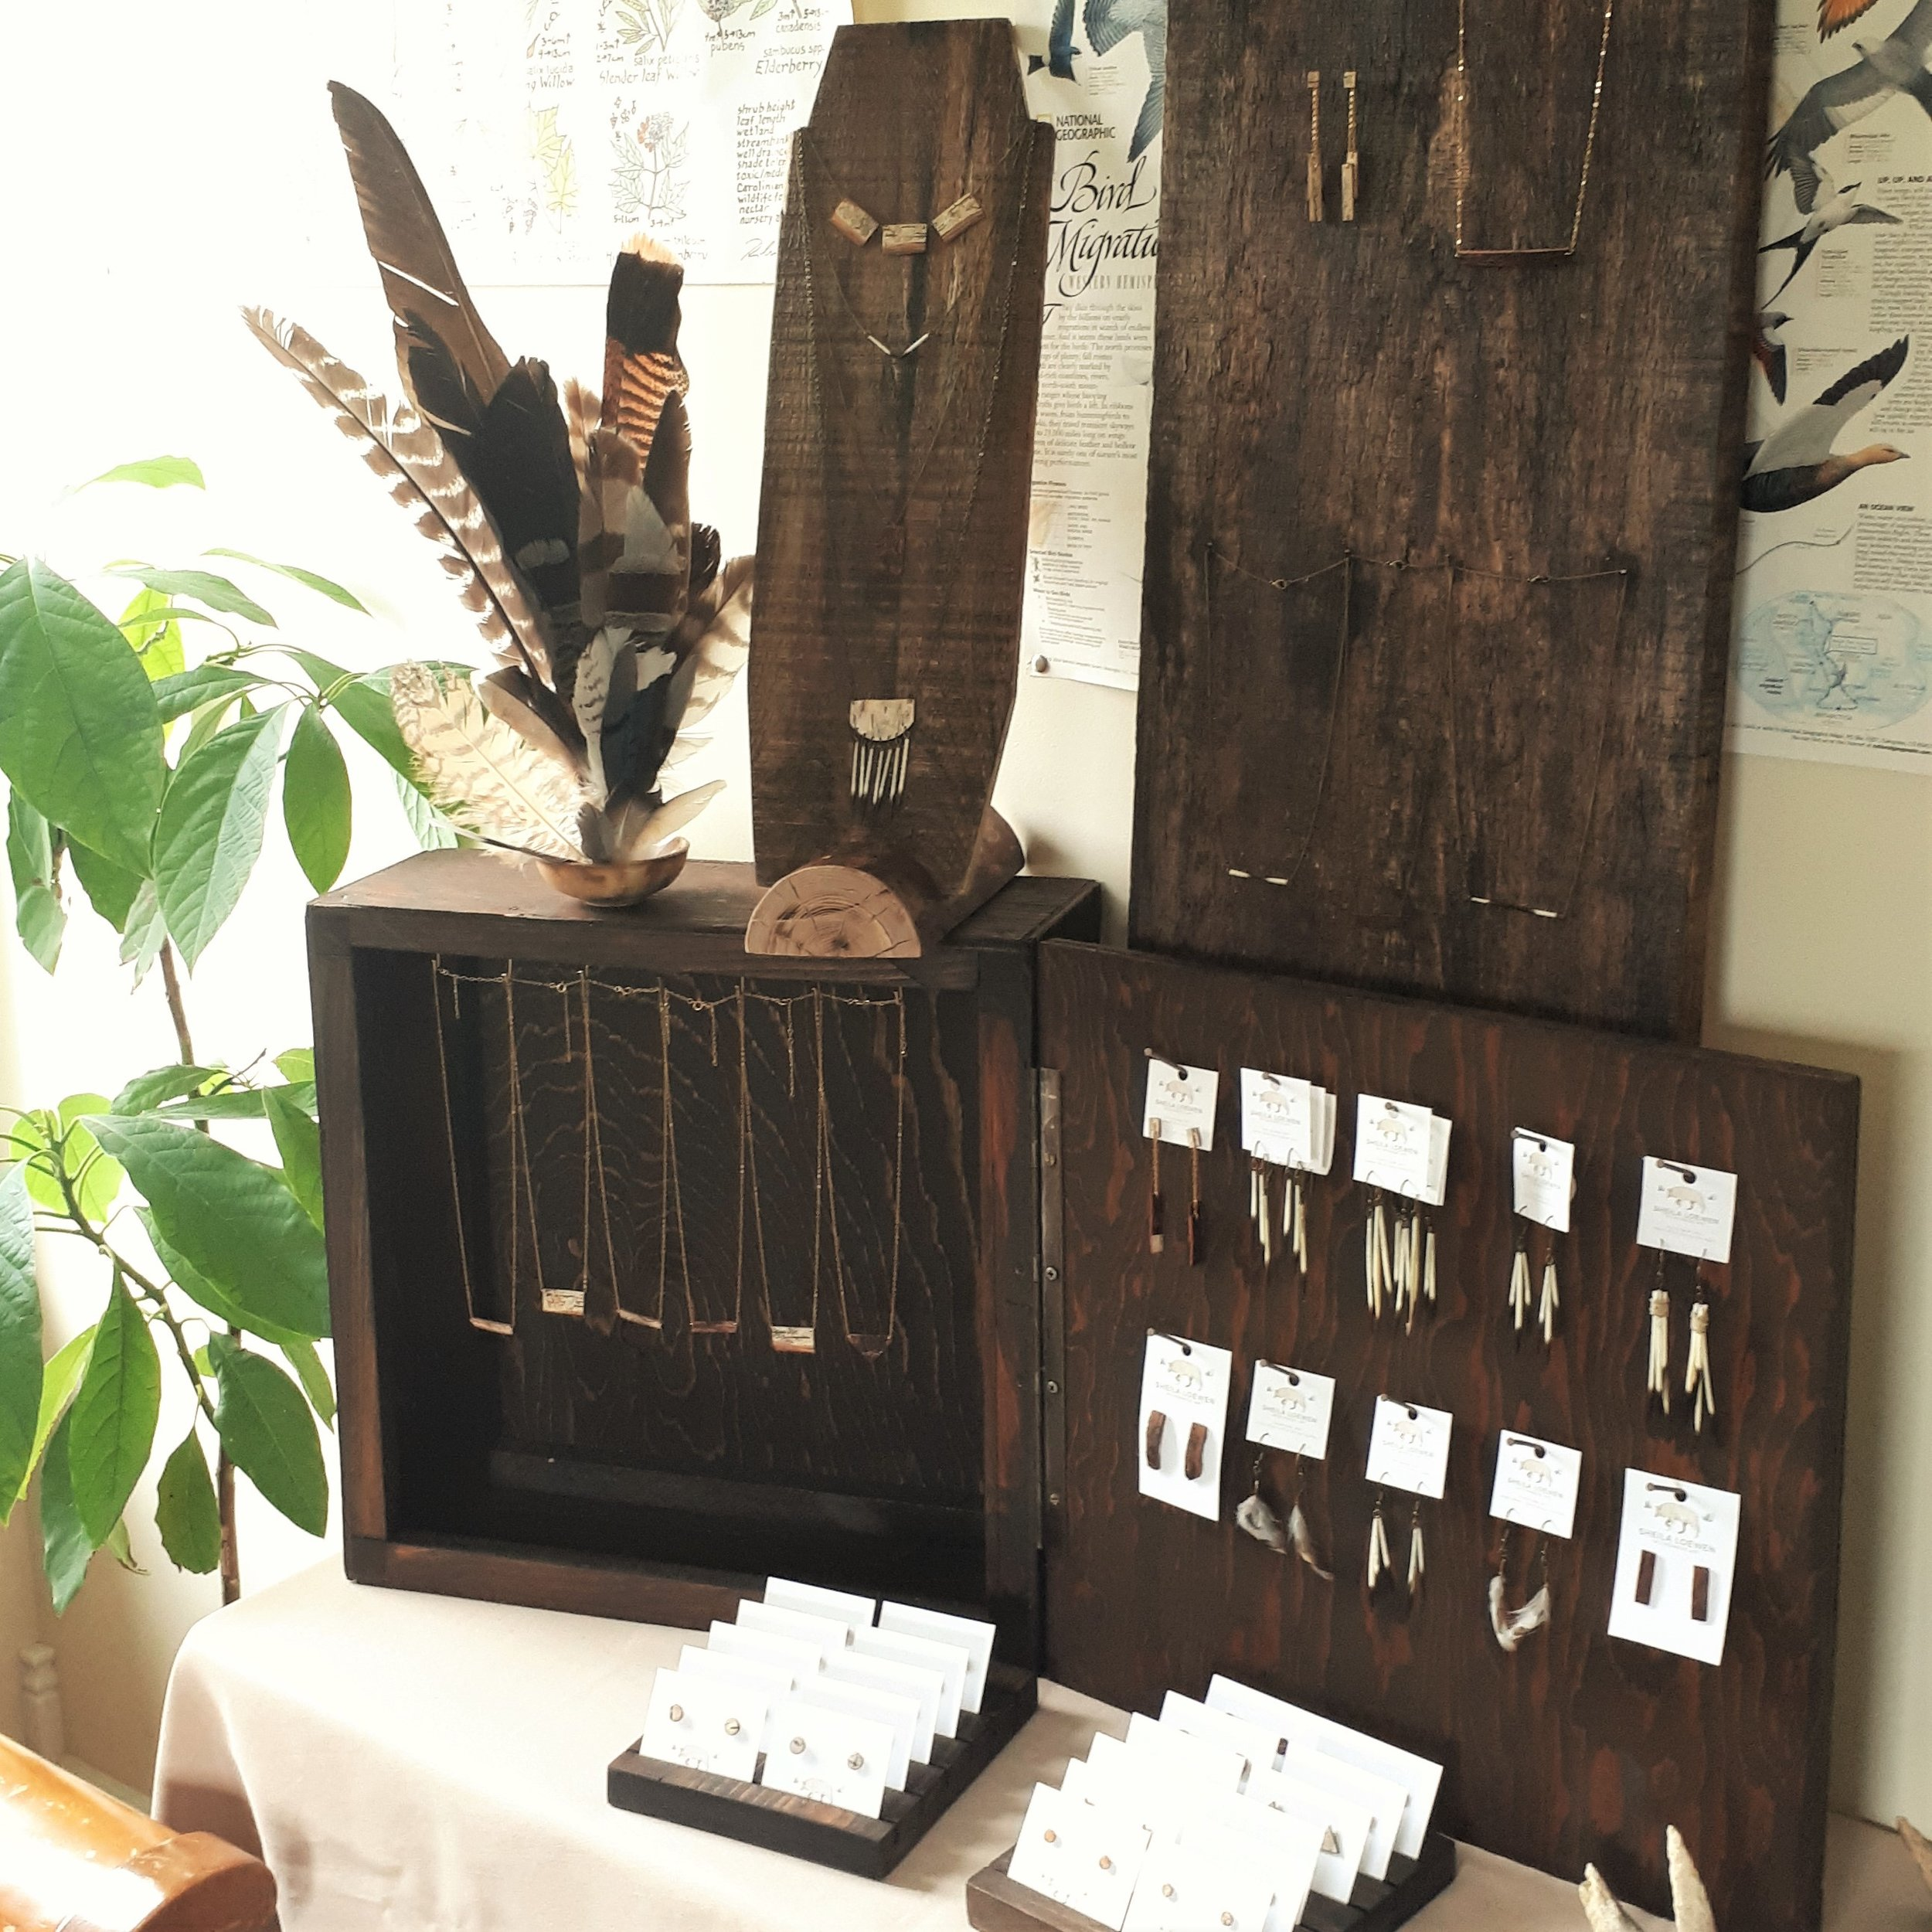 Want to join my team? - If you'd like to become a retailer of Sheila Loewen Wilderness Art products, contact me at sheilaloewenart.com for wholesale pricing.